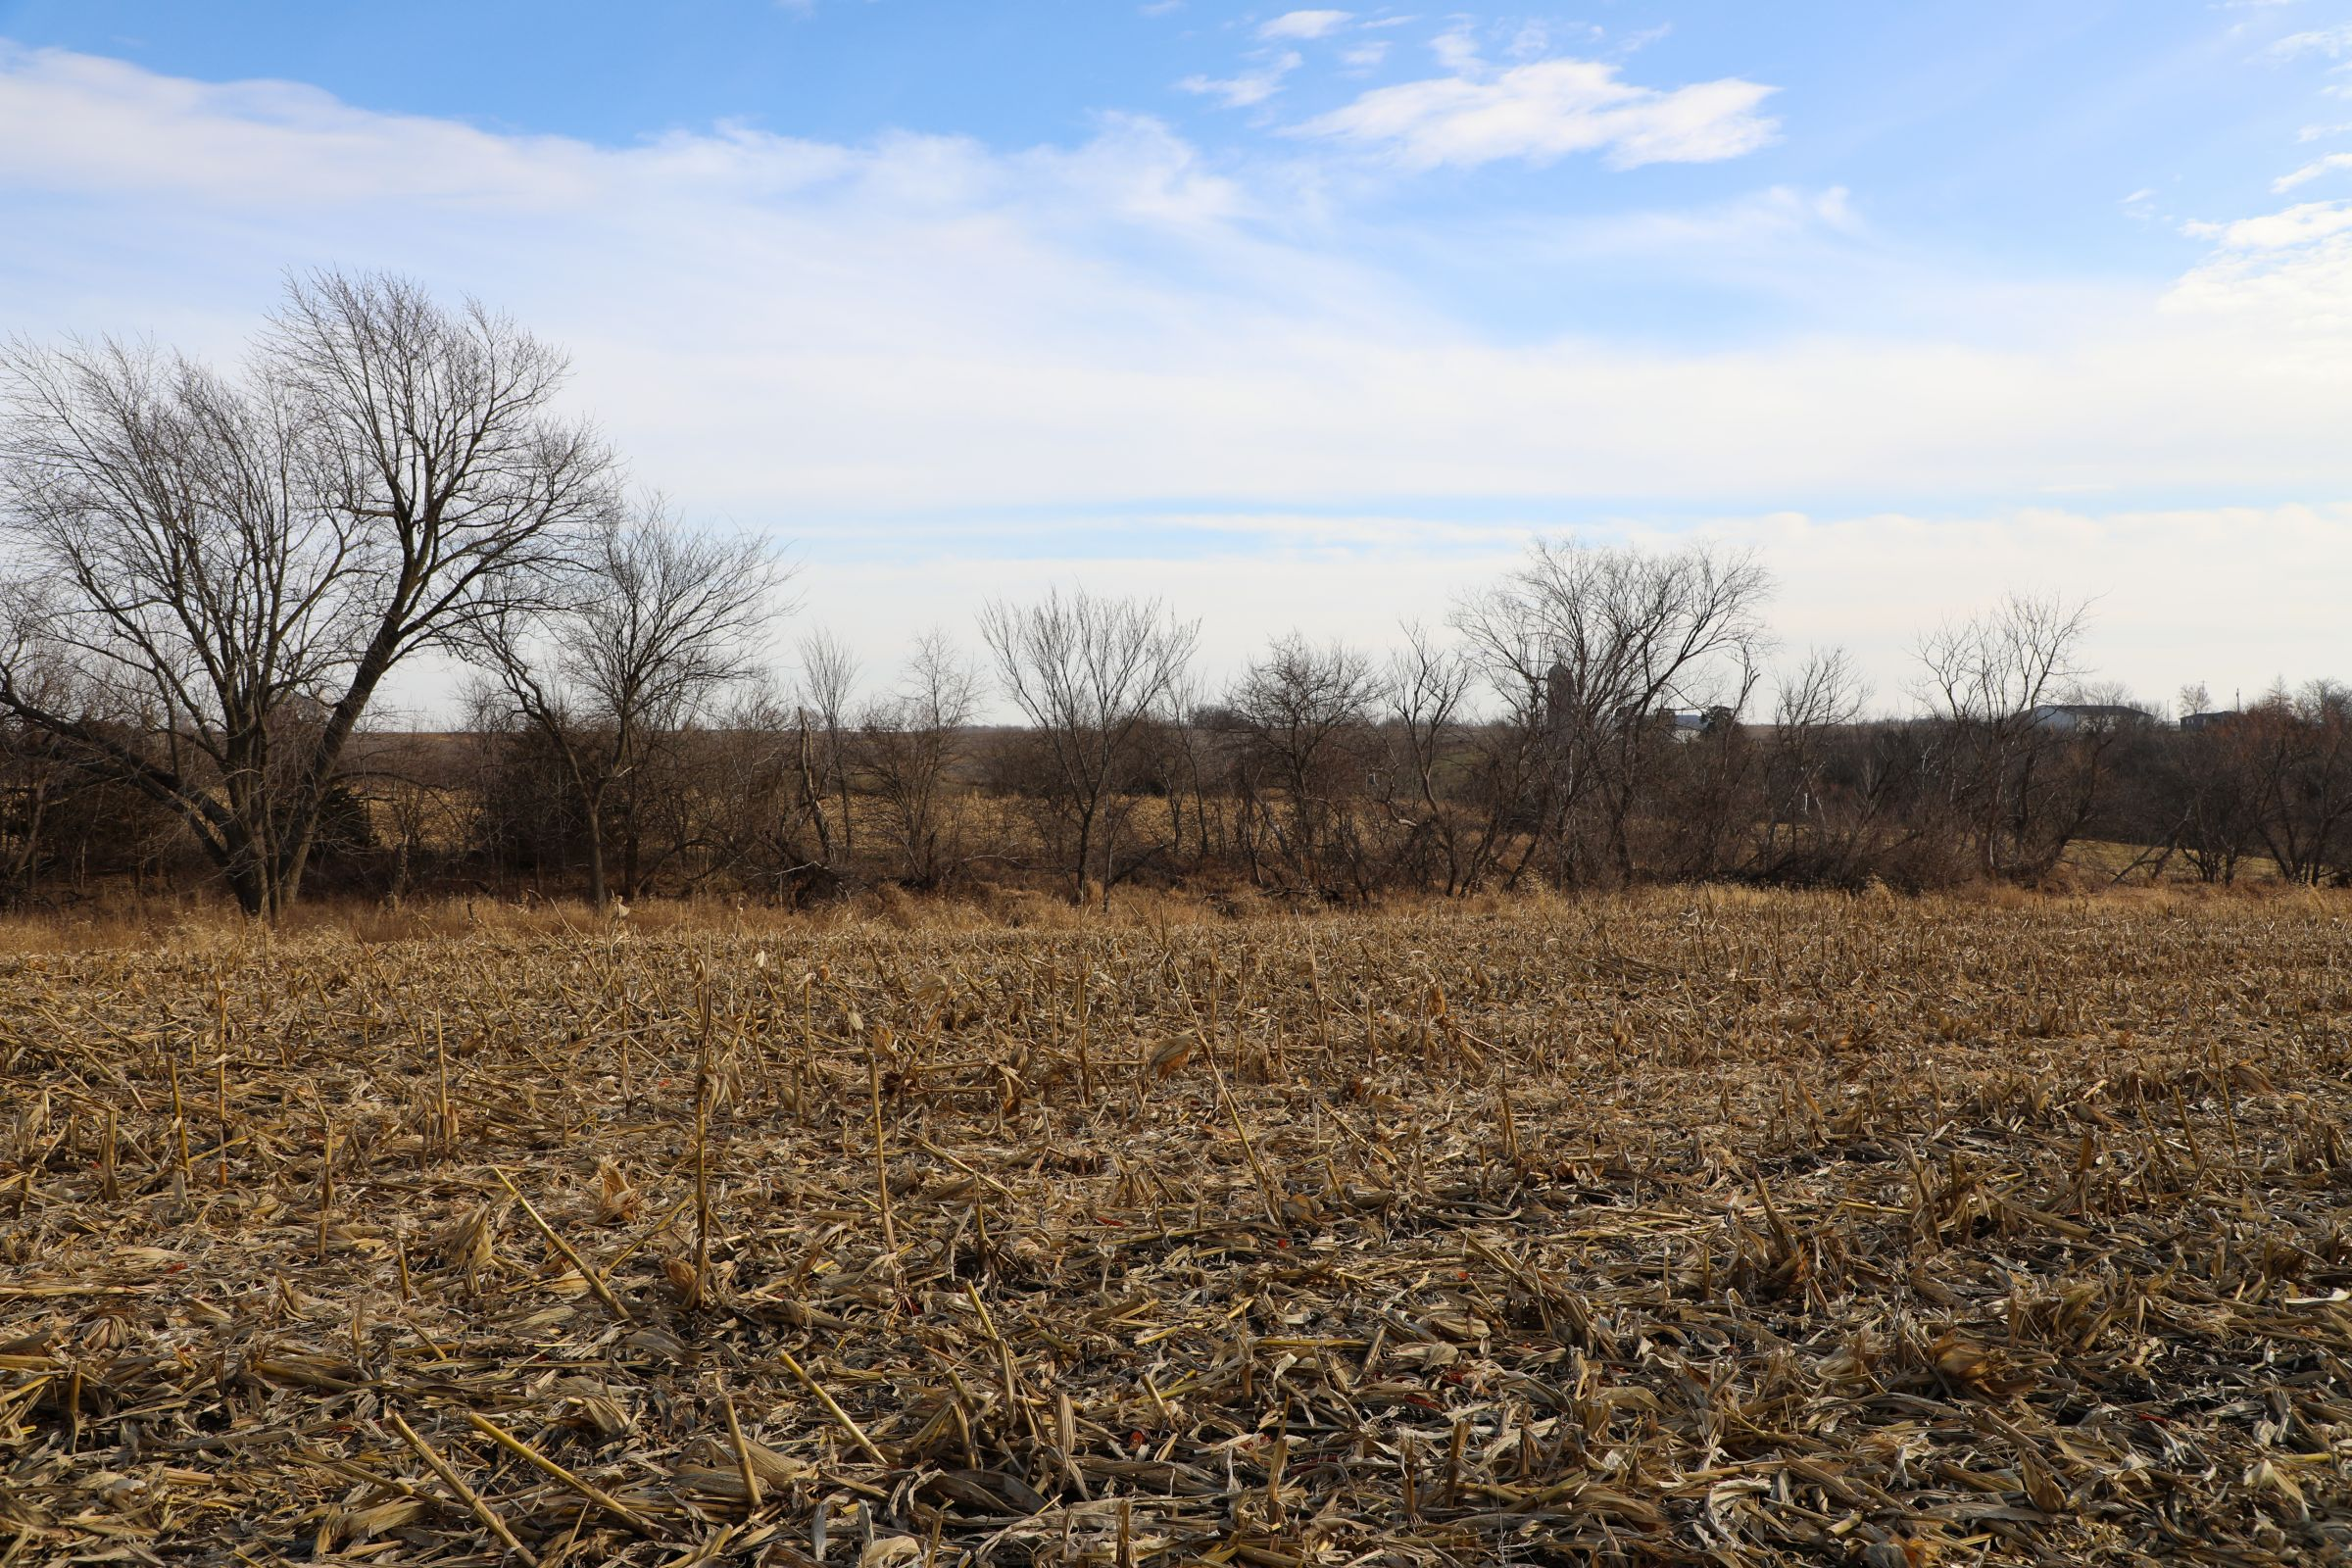 land-appanoose-county-iowa-37-acres-listing-number-15307-0-2020-12-24-154327.jpg